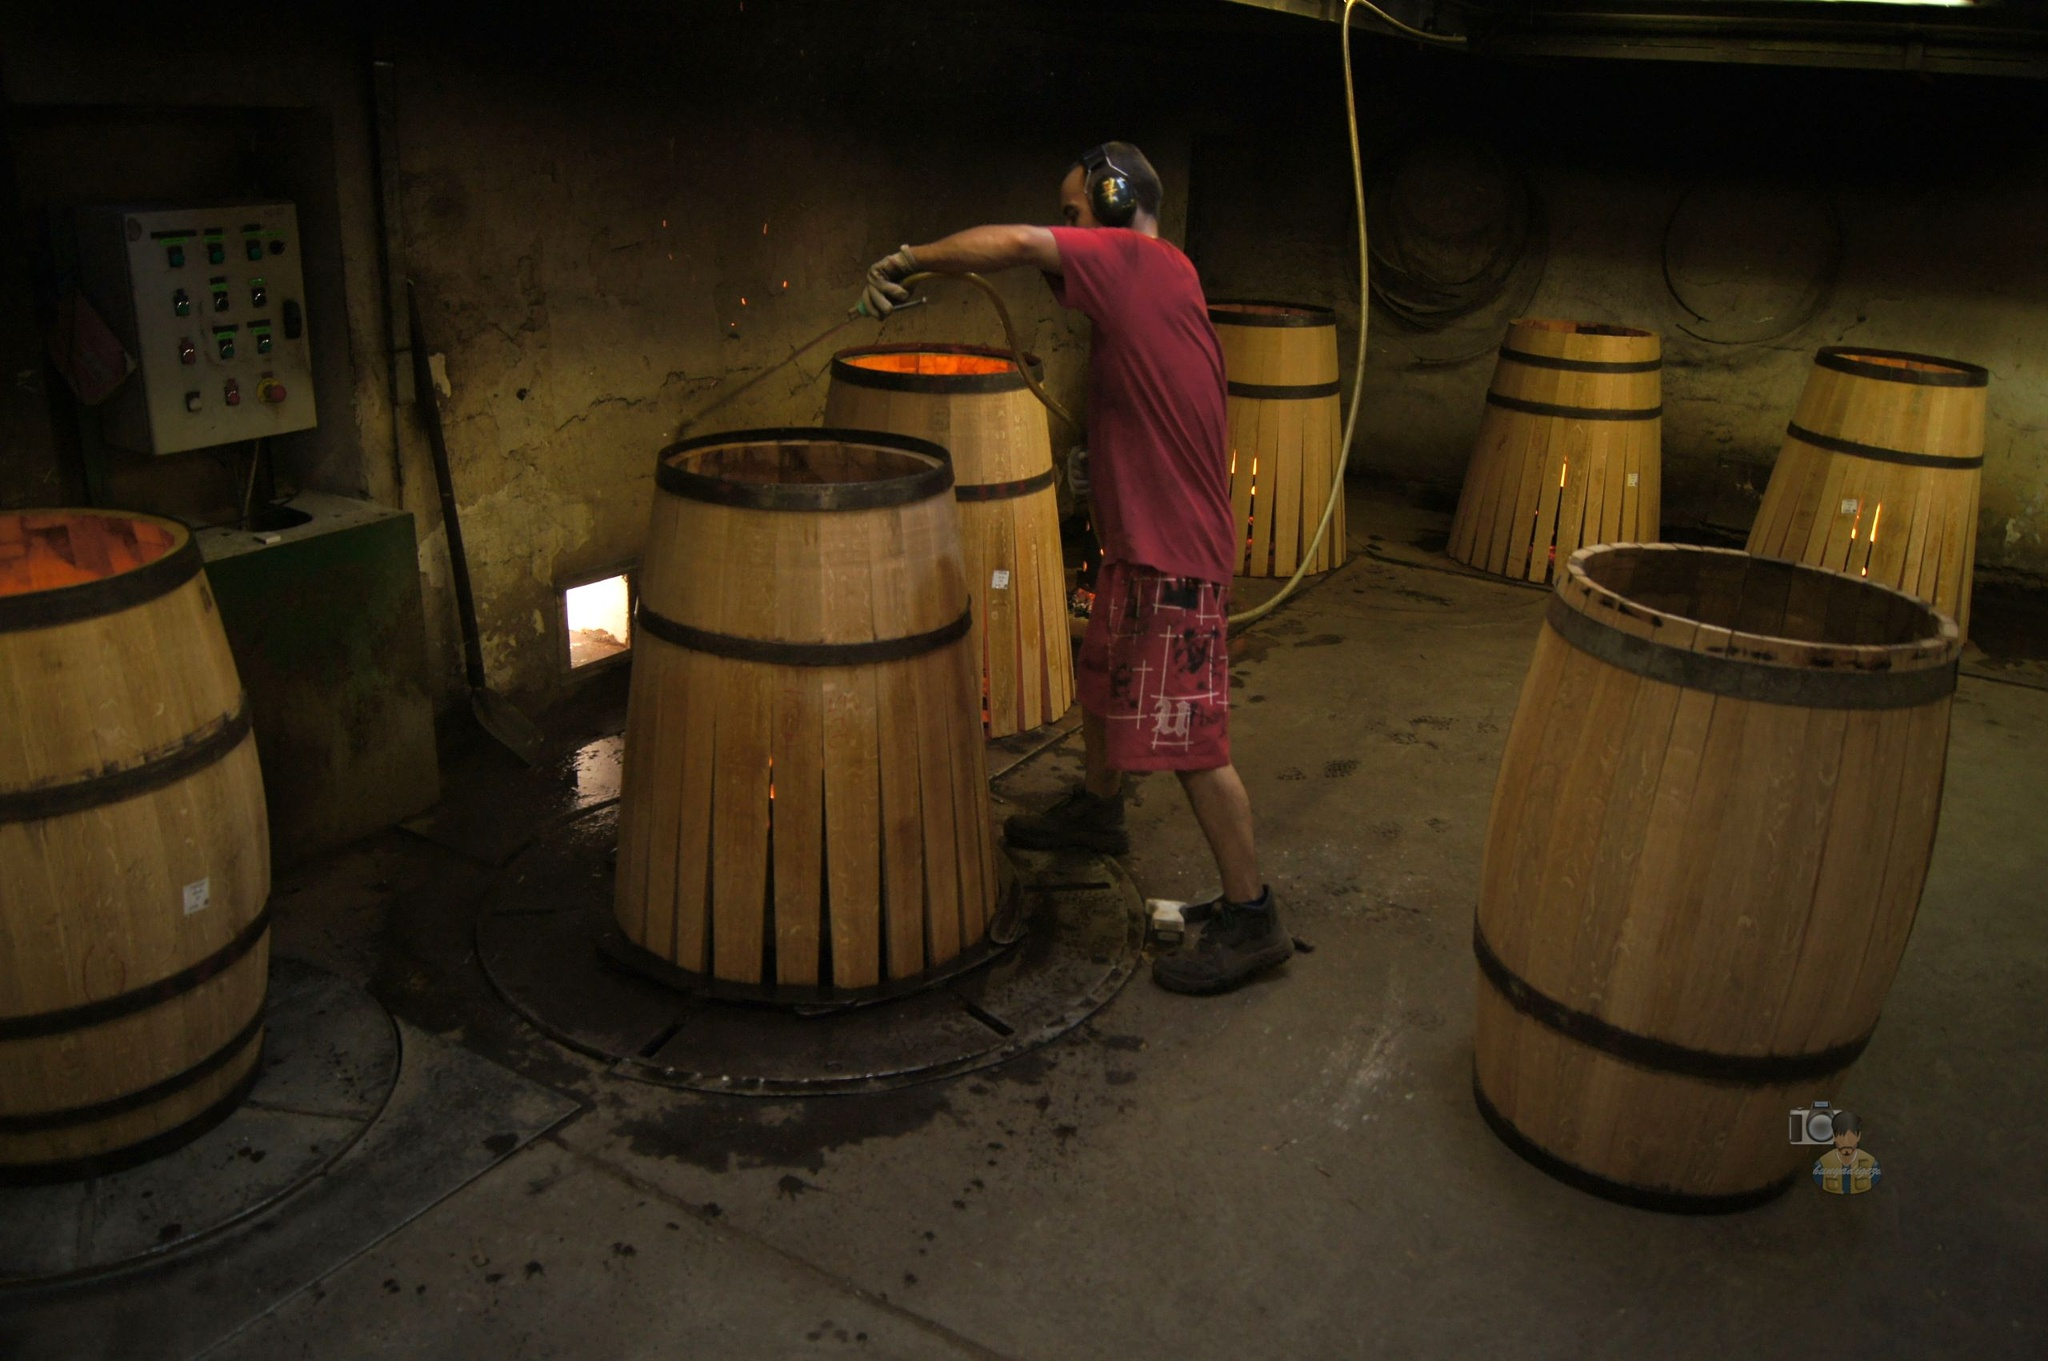 oak wine barrel production Szigetvár, Hungary #2 by hunyadigeza